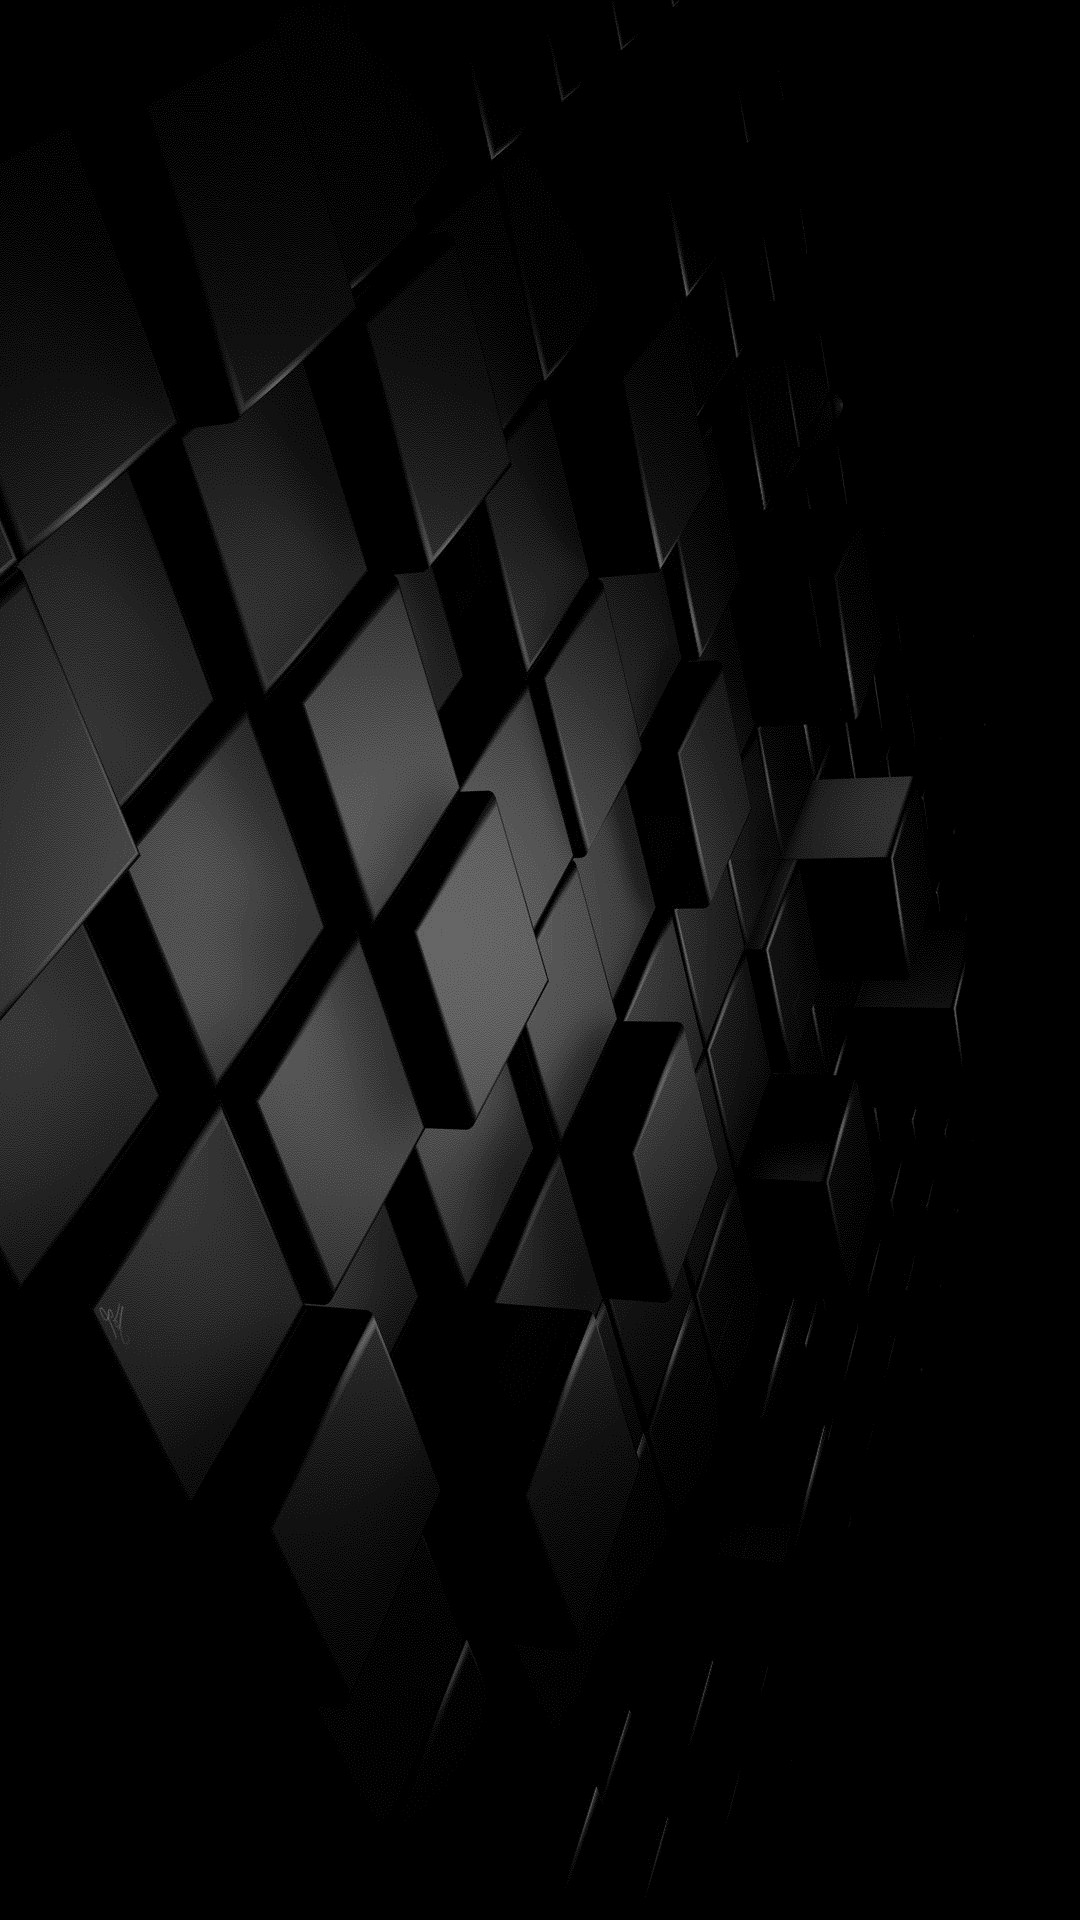 Black Wallpaper Hd For Mobile Posted By Ryan Tremblay